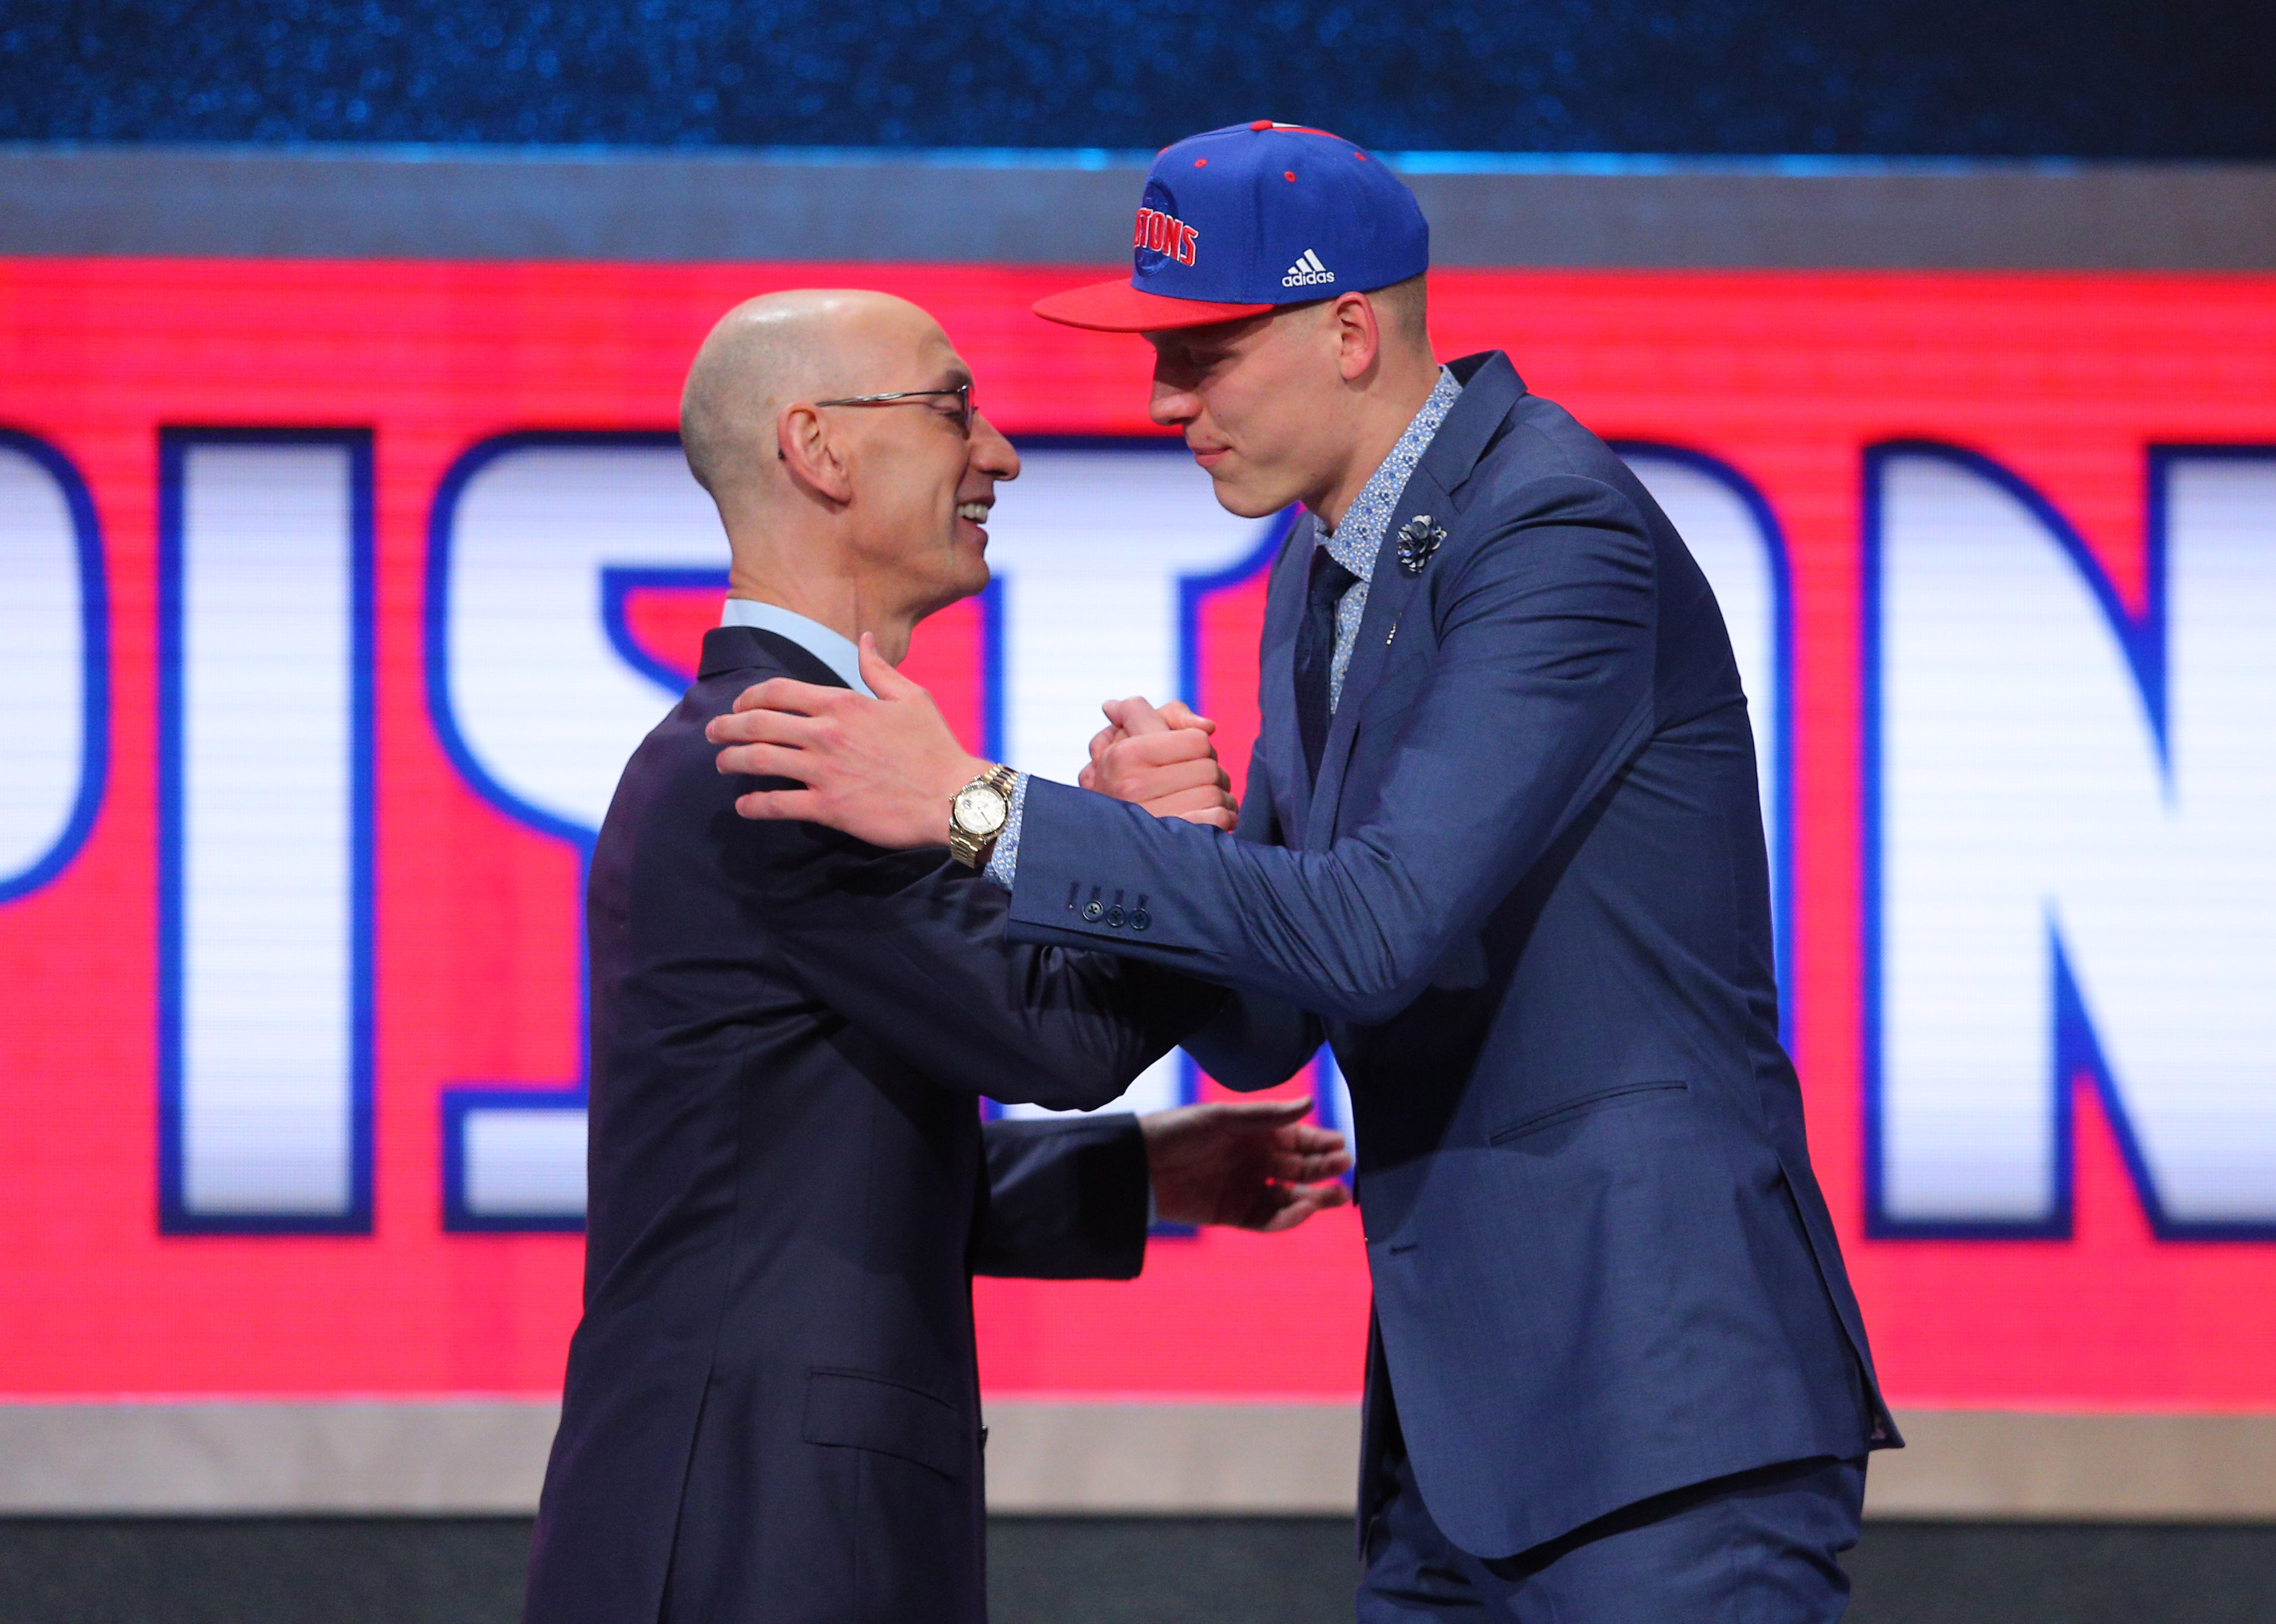 Jun 23, 2016; New York, NY, USA; Henry Ellenson (Marquette) greets NBA commissioner Adam Silver after being selected as the number eighteen overall pick to the Detroit Pistons in the first round of the 2016 NBA Draft at Barclays Center. Mandatory Credit: Brad Penner-USA TODAY Sports ORG XMIT: USATSI-269318 ORIG FILE ID: 20160623_jel_ae5_163.jpg